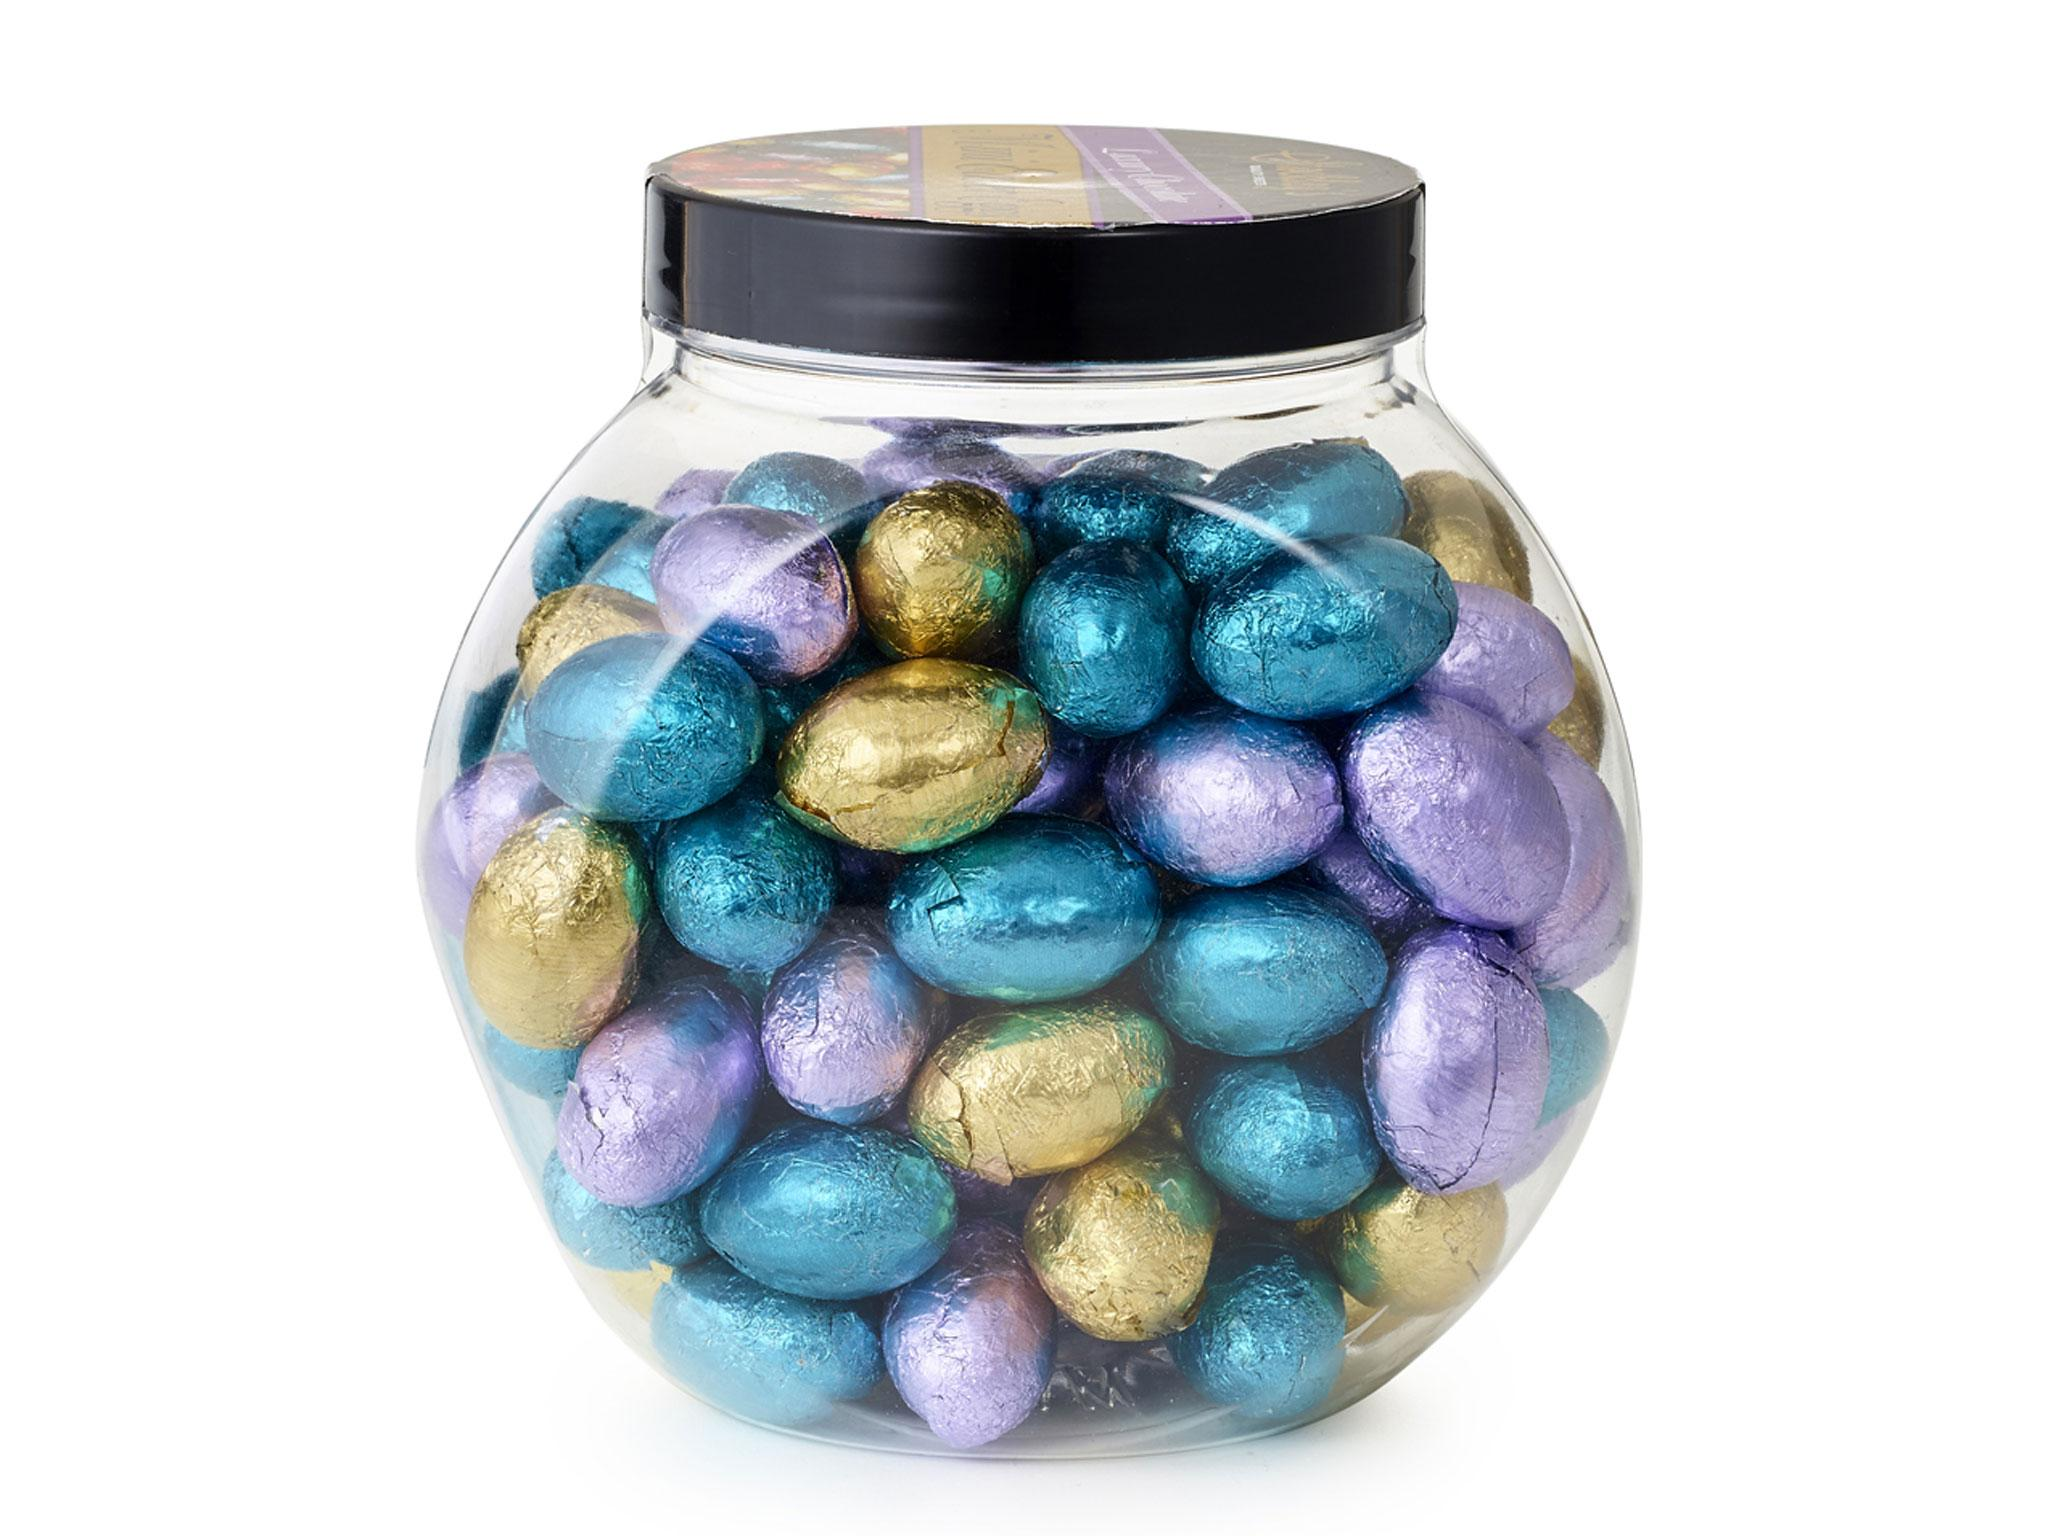 15 best kids easter eggs 2018 the independent if an easter egg hunt is a more appealing way for you to splash the cash this year rather than buying one large hollow egg that they may lose interest in negle Images